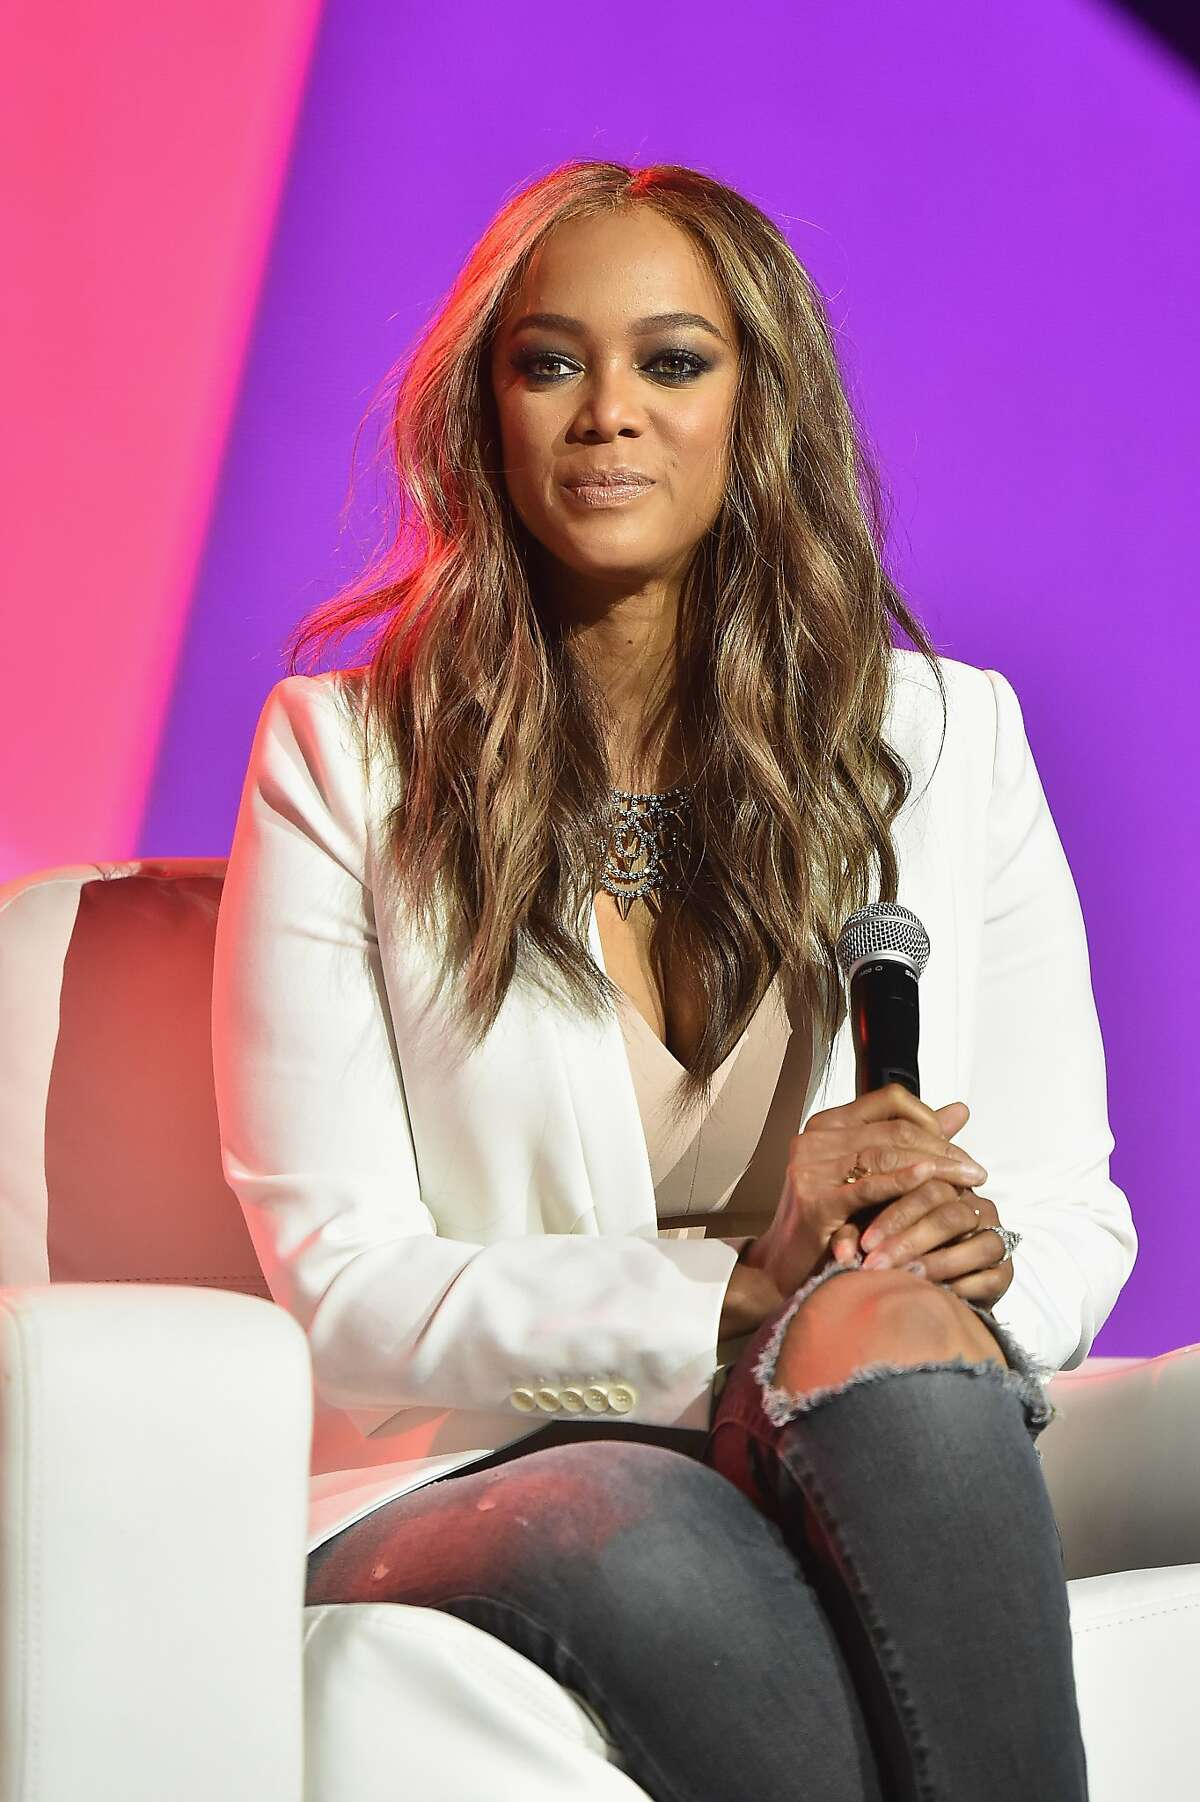 NEW ORLEANS, LA - JULY 02: Tyra Banks speaks onstage during the 2016 ESSENCE Festival presented By Coca-Cola at Ernest N. Morial Convention Center on July 2, 2016 in New Orleans, Louisiana. (Photo by Paras Griffin/Getty Images for 2016 Essence Festival)